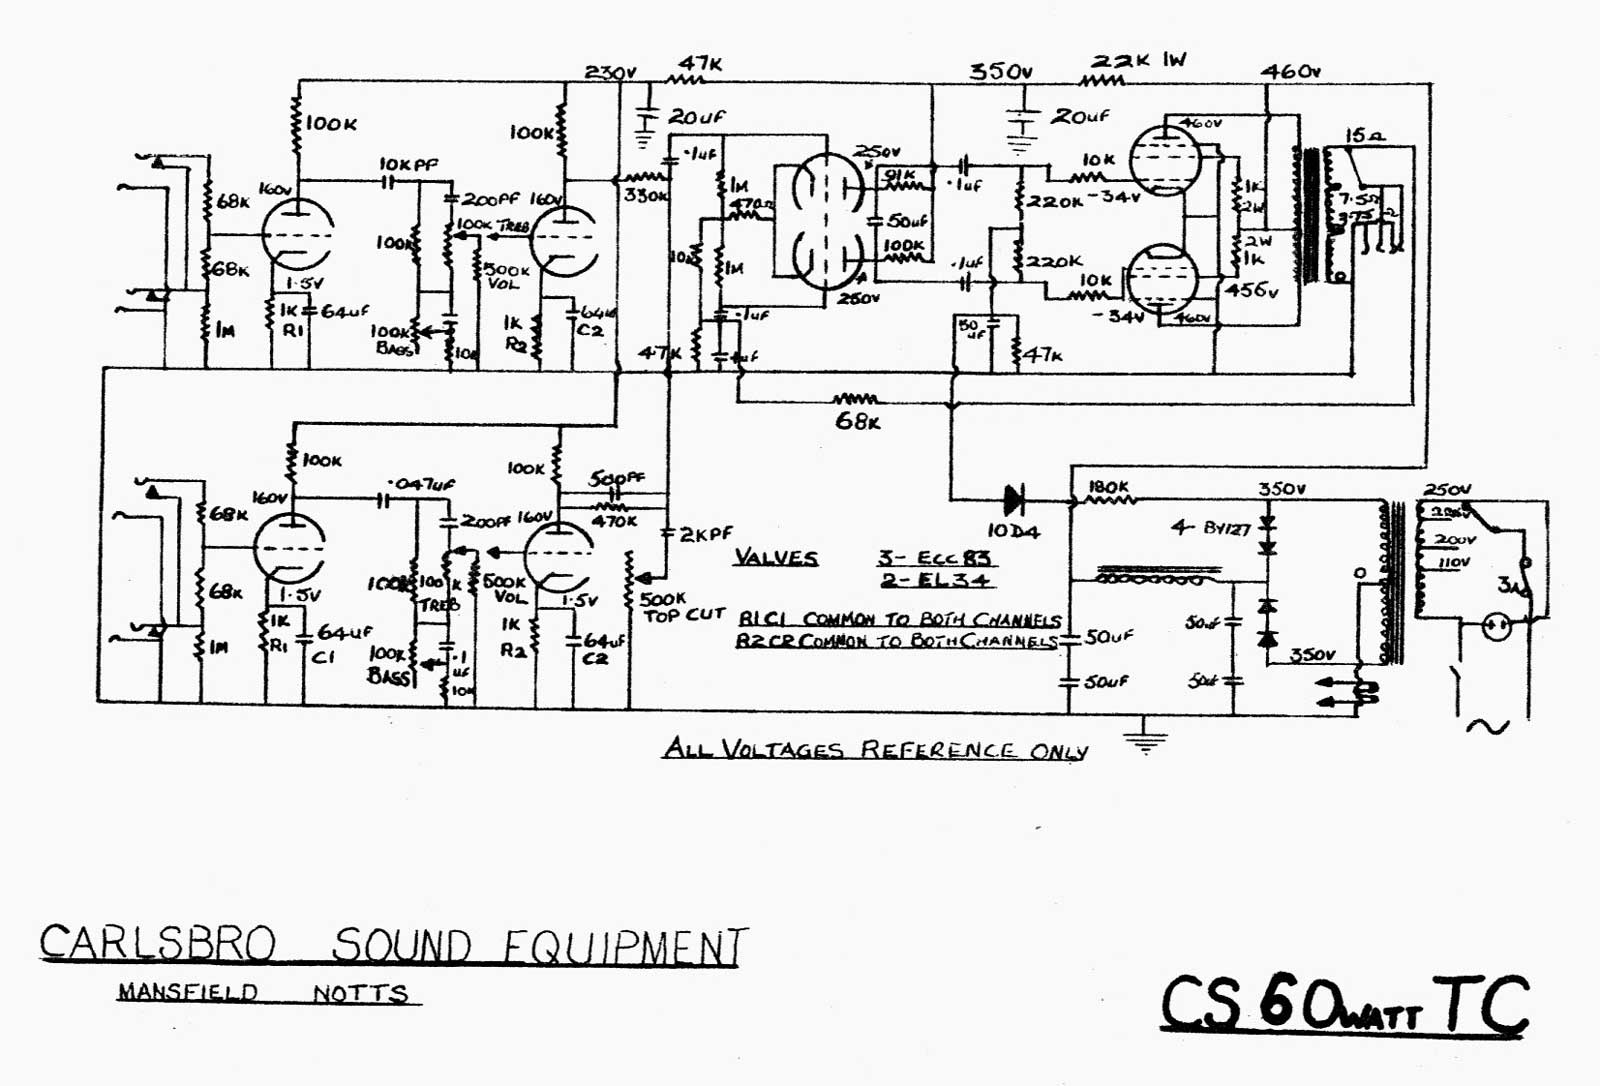 hight resolution of carlsbro cs60 t c amp schematic peavey raptor wiring diagram peavey guitar wiring diagrams